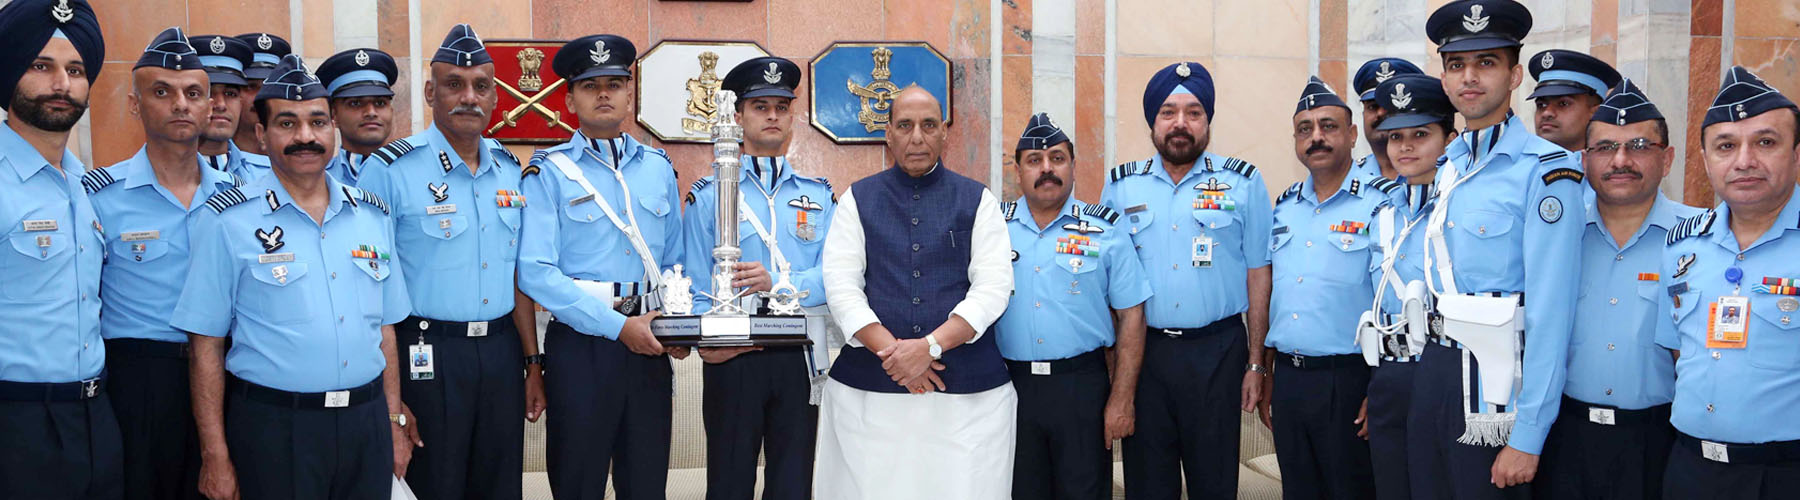 Raksha Mantri Shri Rajnath Singh with the officers of Indian Air Force that was adjudged the best marching contingent among the three Services in Republic Day Parade 2020, in New Delhi on February 24, 2020